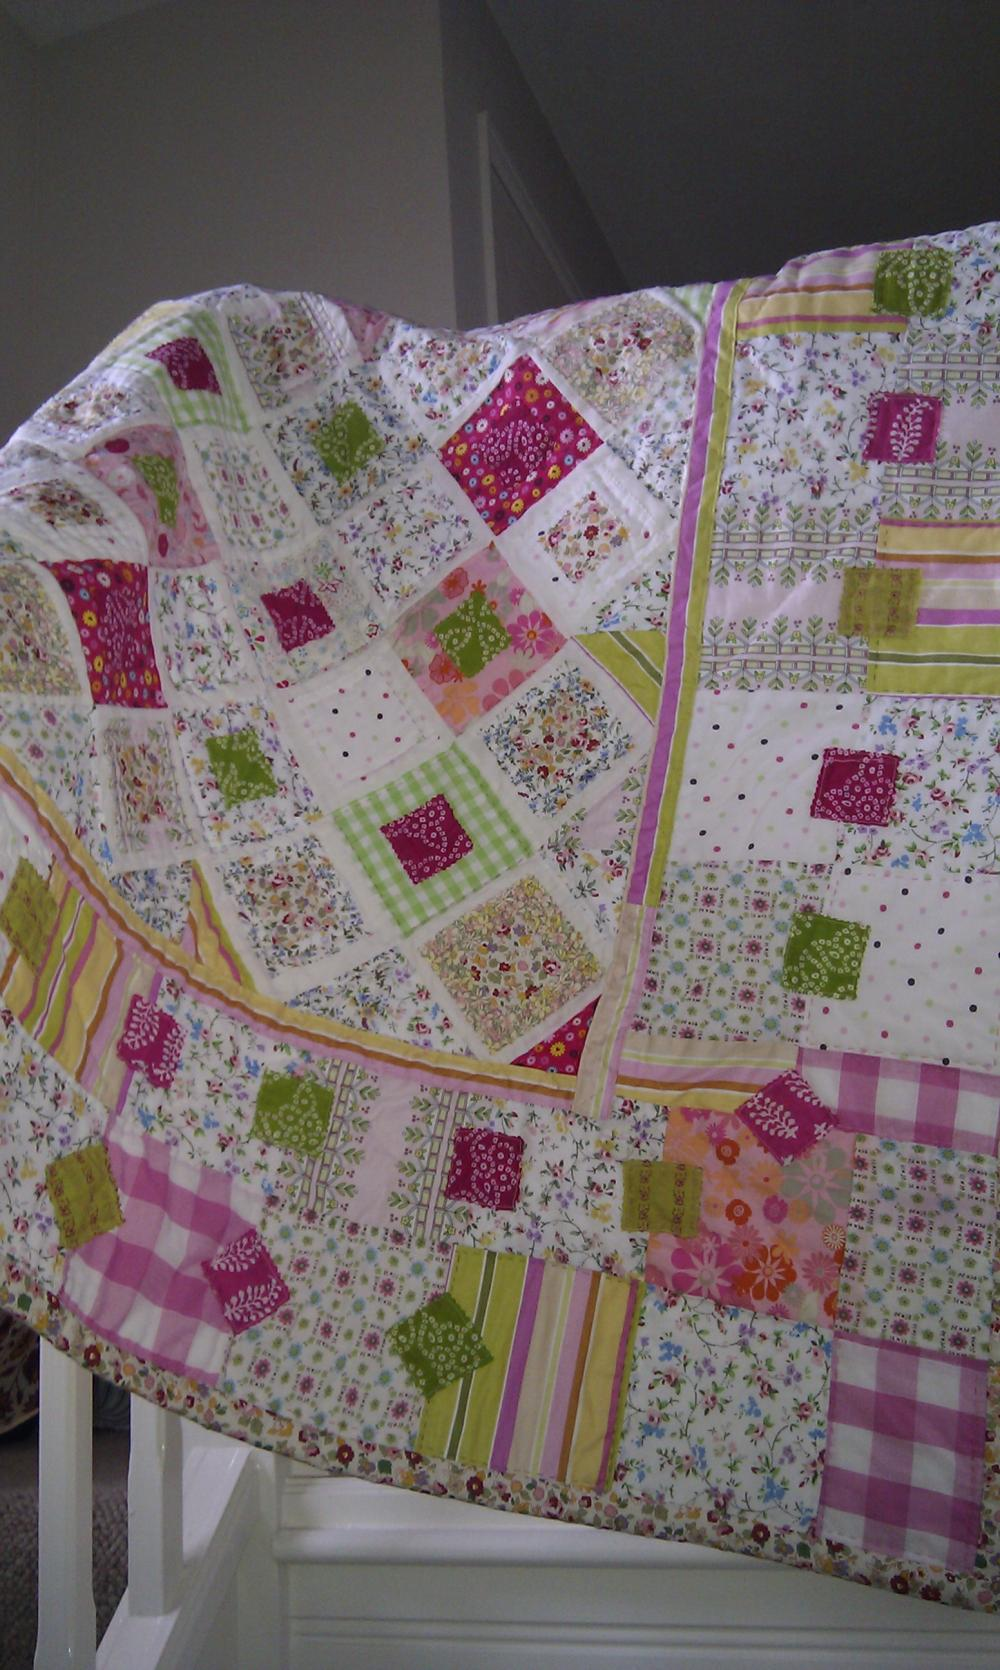 Patchwork quilt lap quilt sweetshop colours girls patchwork quilt wall hanging crib quilt